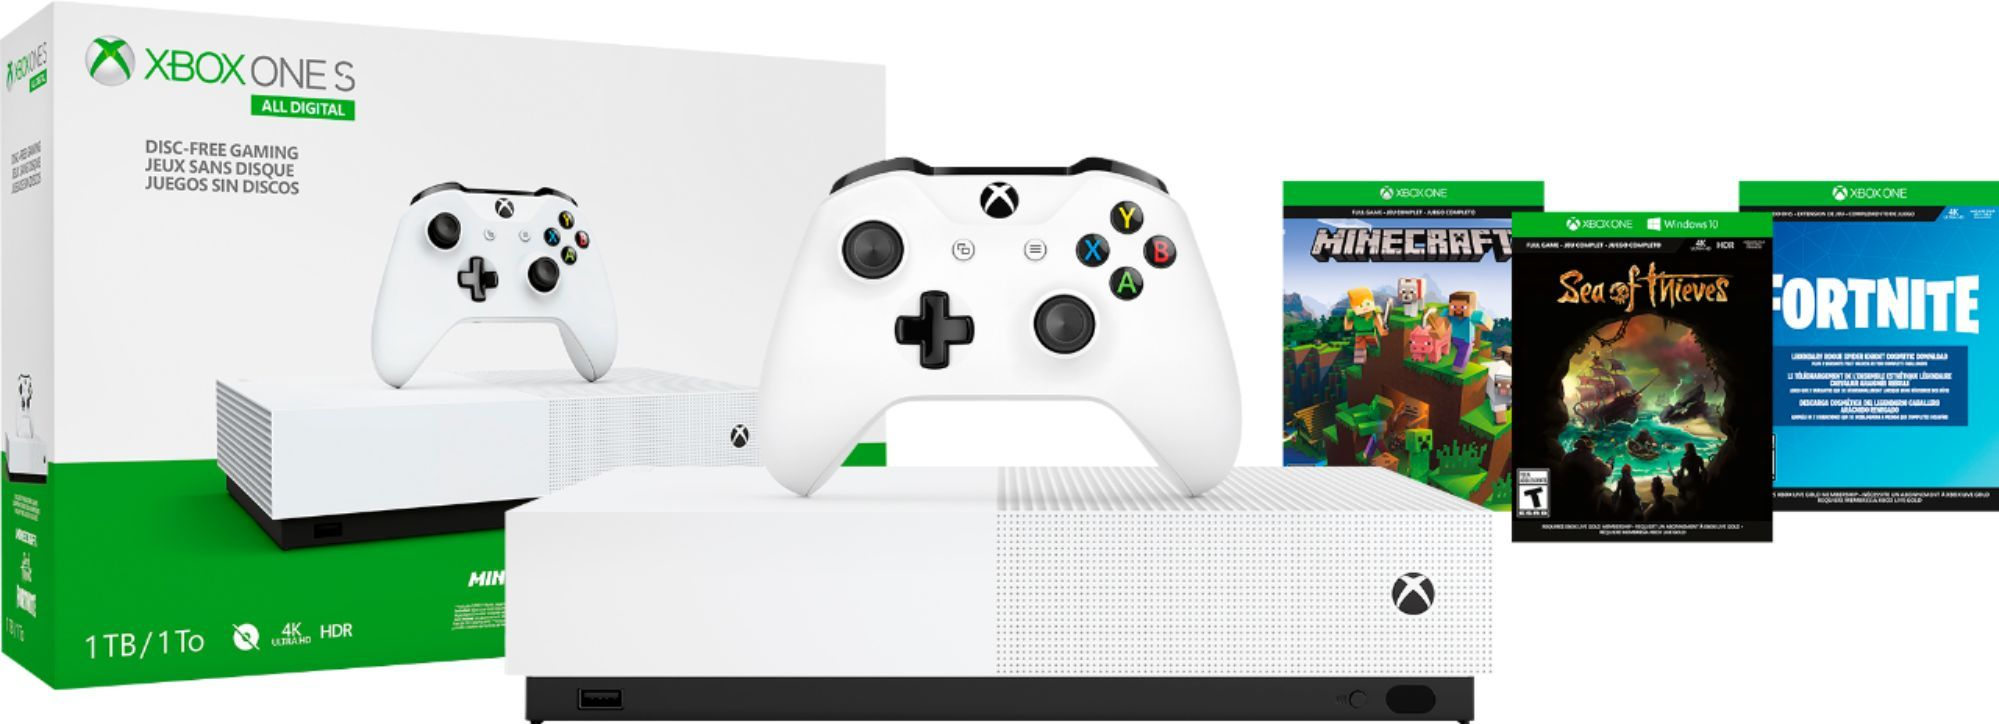 Microsoft Xbox One S 1tb All Digital Edition Console Disc Free Gaming White Njp 00050 Best Buy Xbox One S Xbox One S 1tb Xbox One